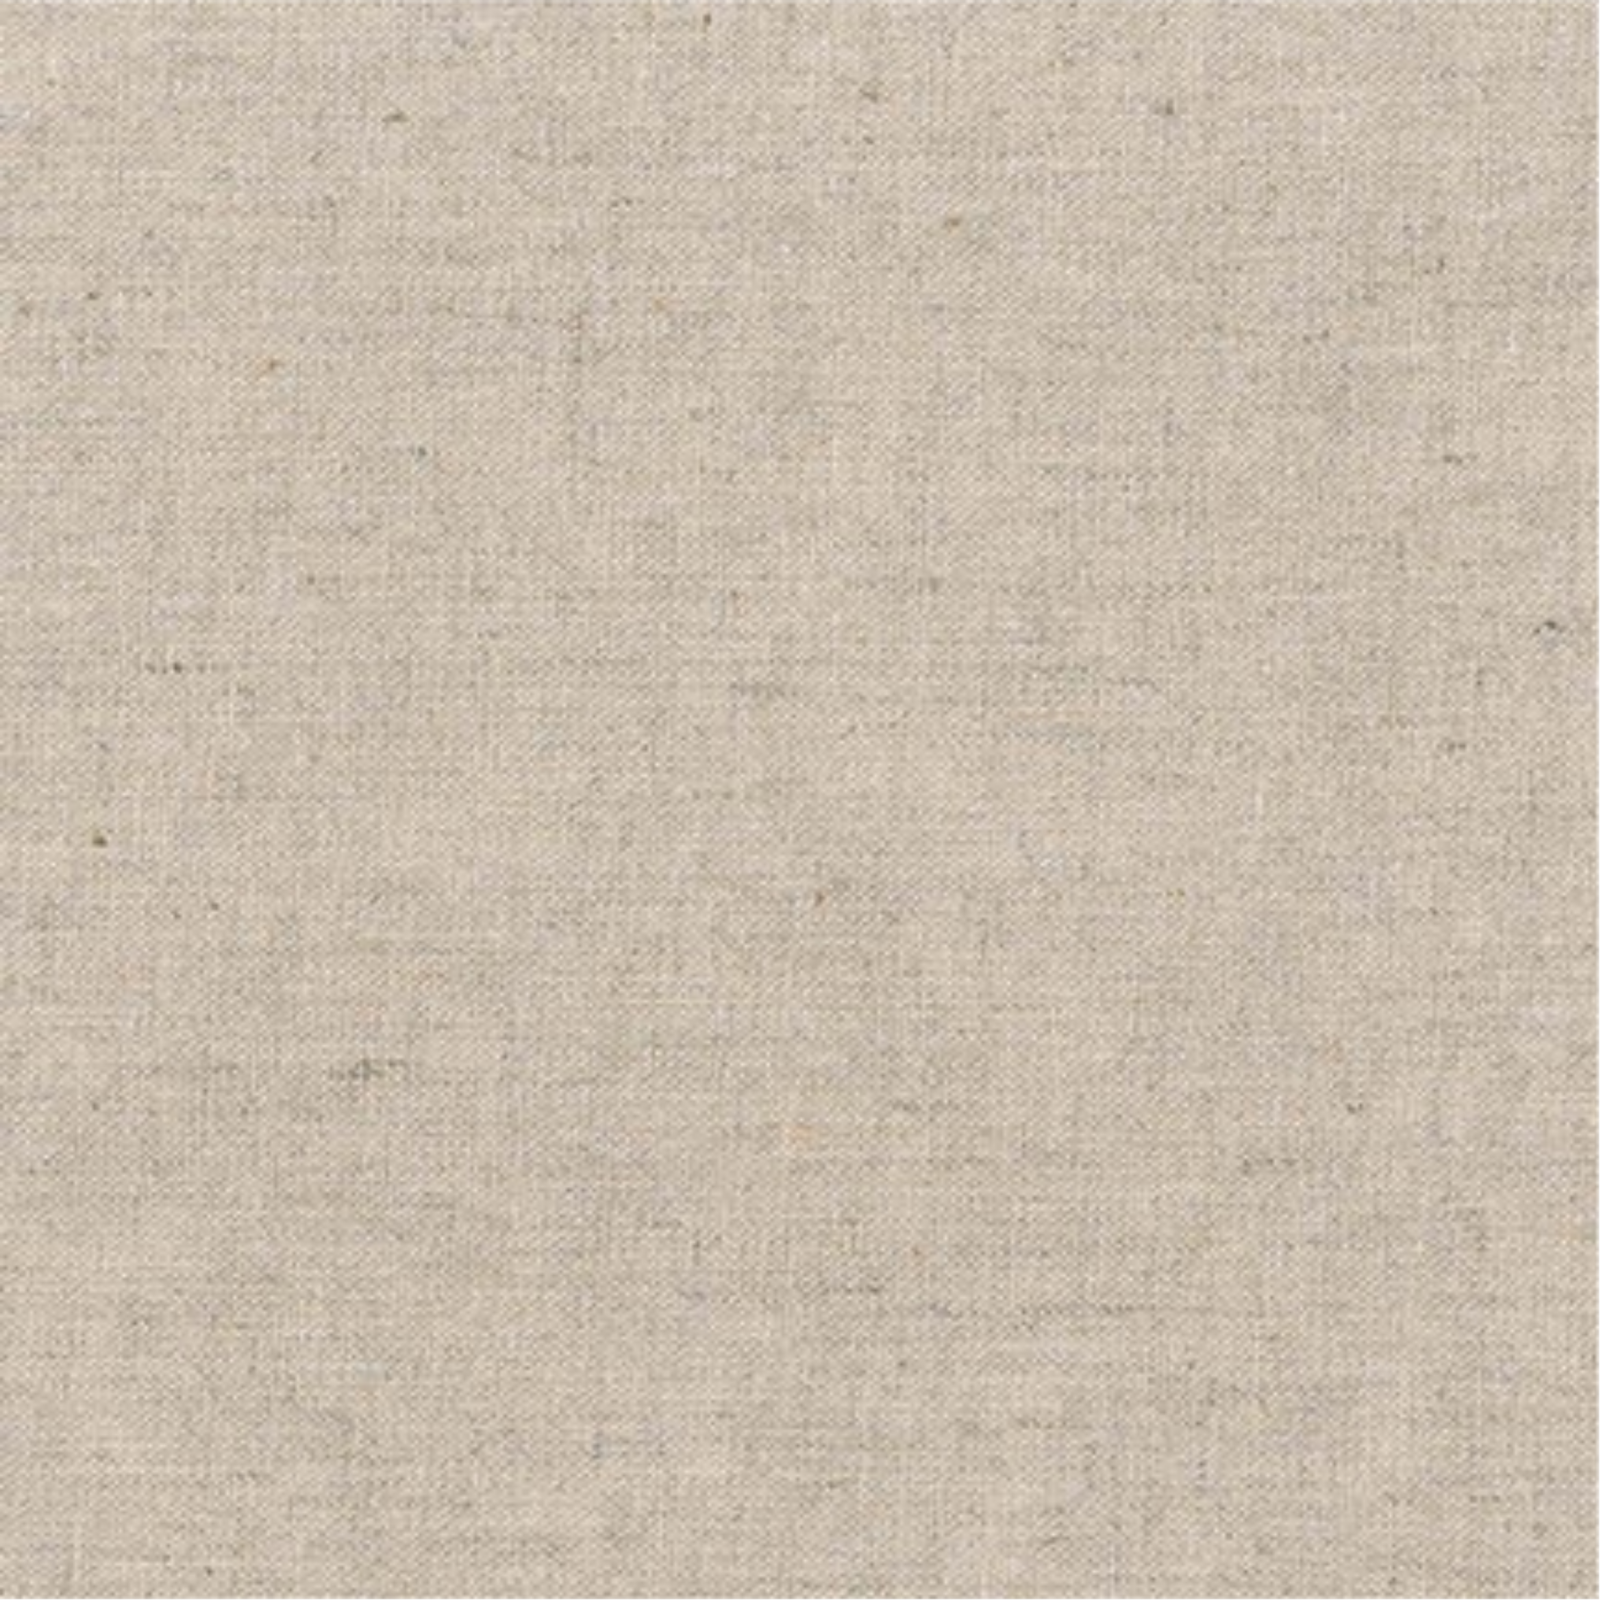 Brussels Washer Linen/Rayon - Natural 52